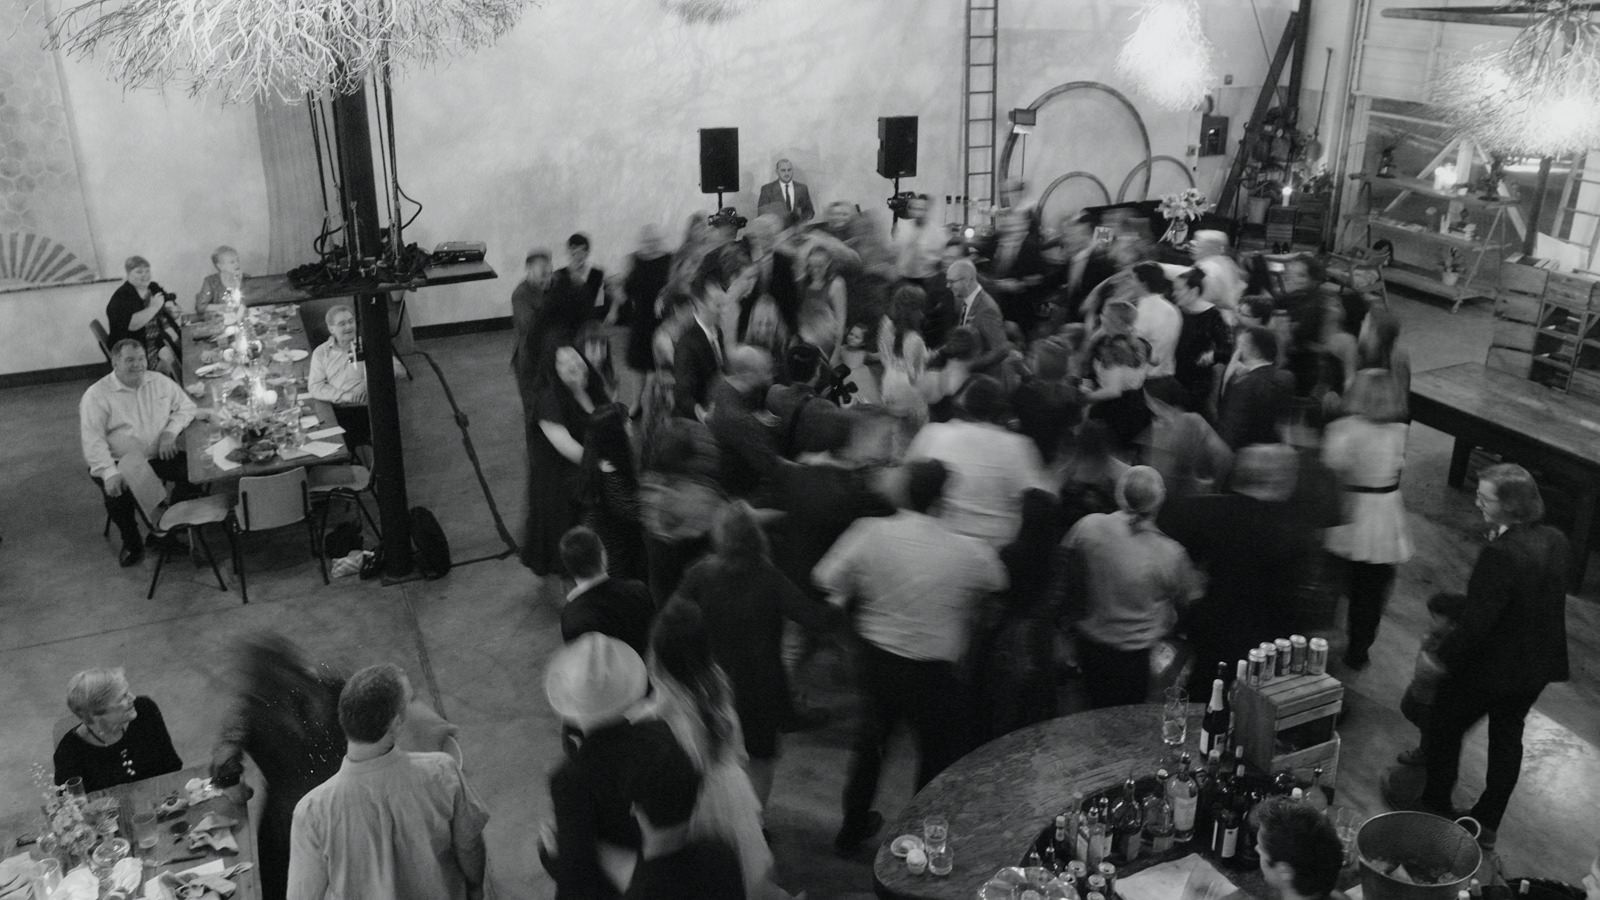 Wedding march ending of guests dancing around newly married couple at Vuka in Austin